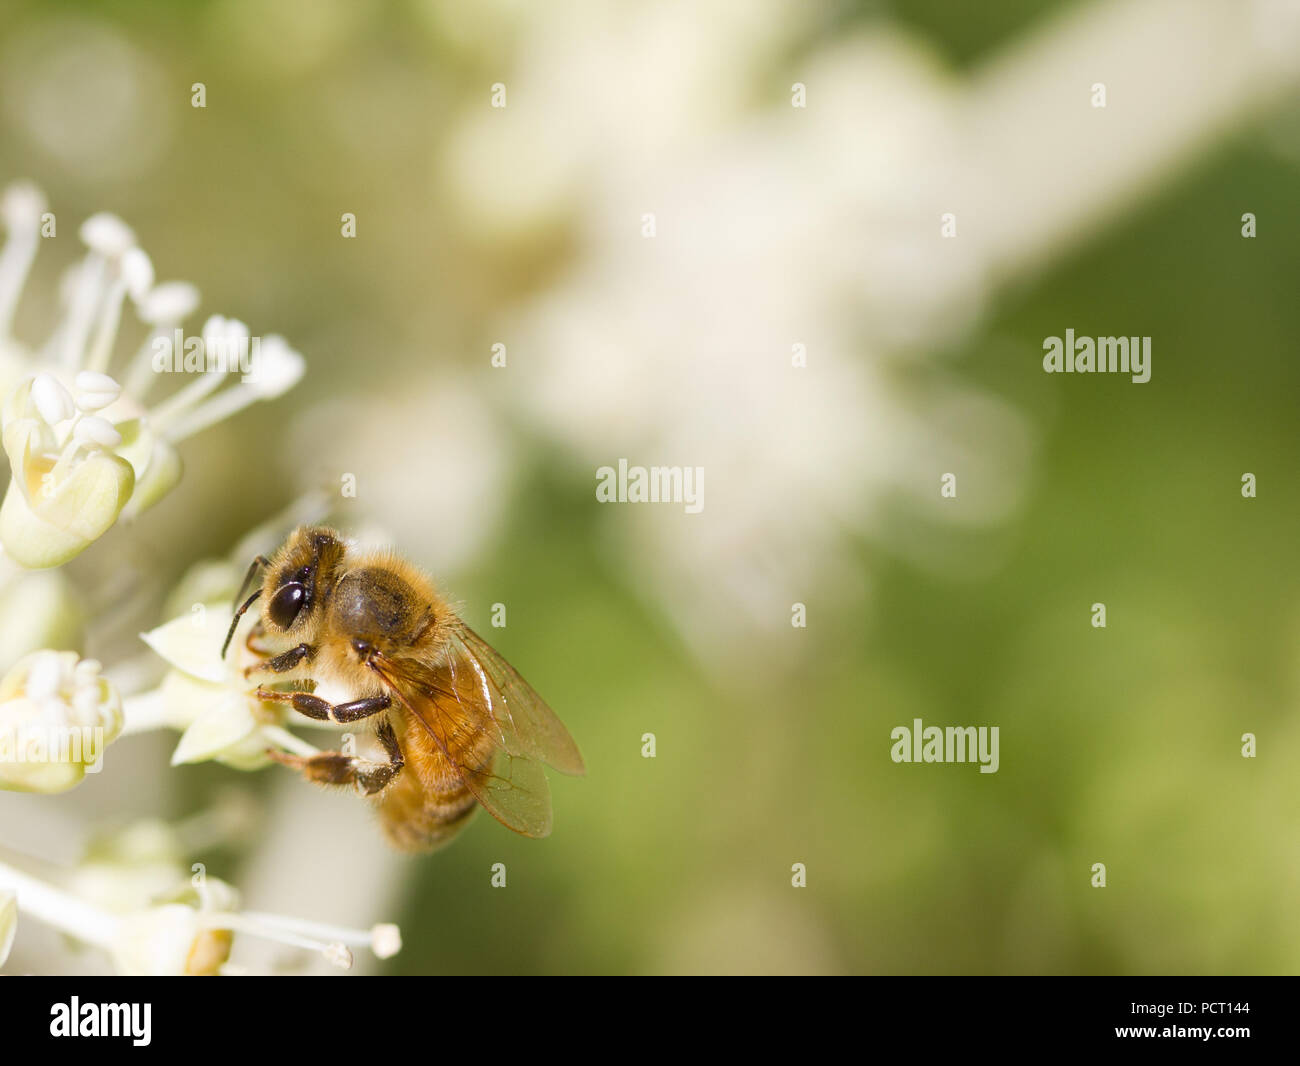 Bee collecting pollen on White flower with blurred green background photo Stock Photo